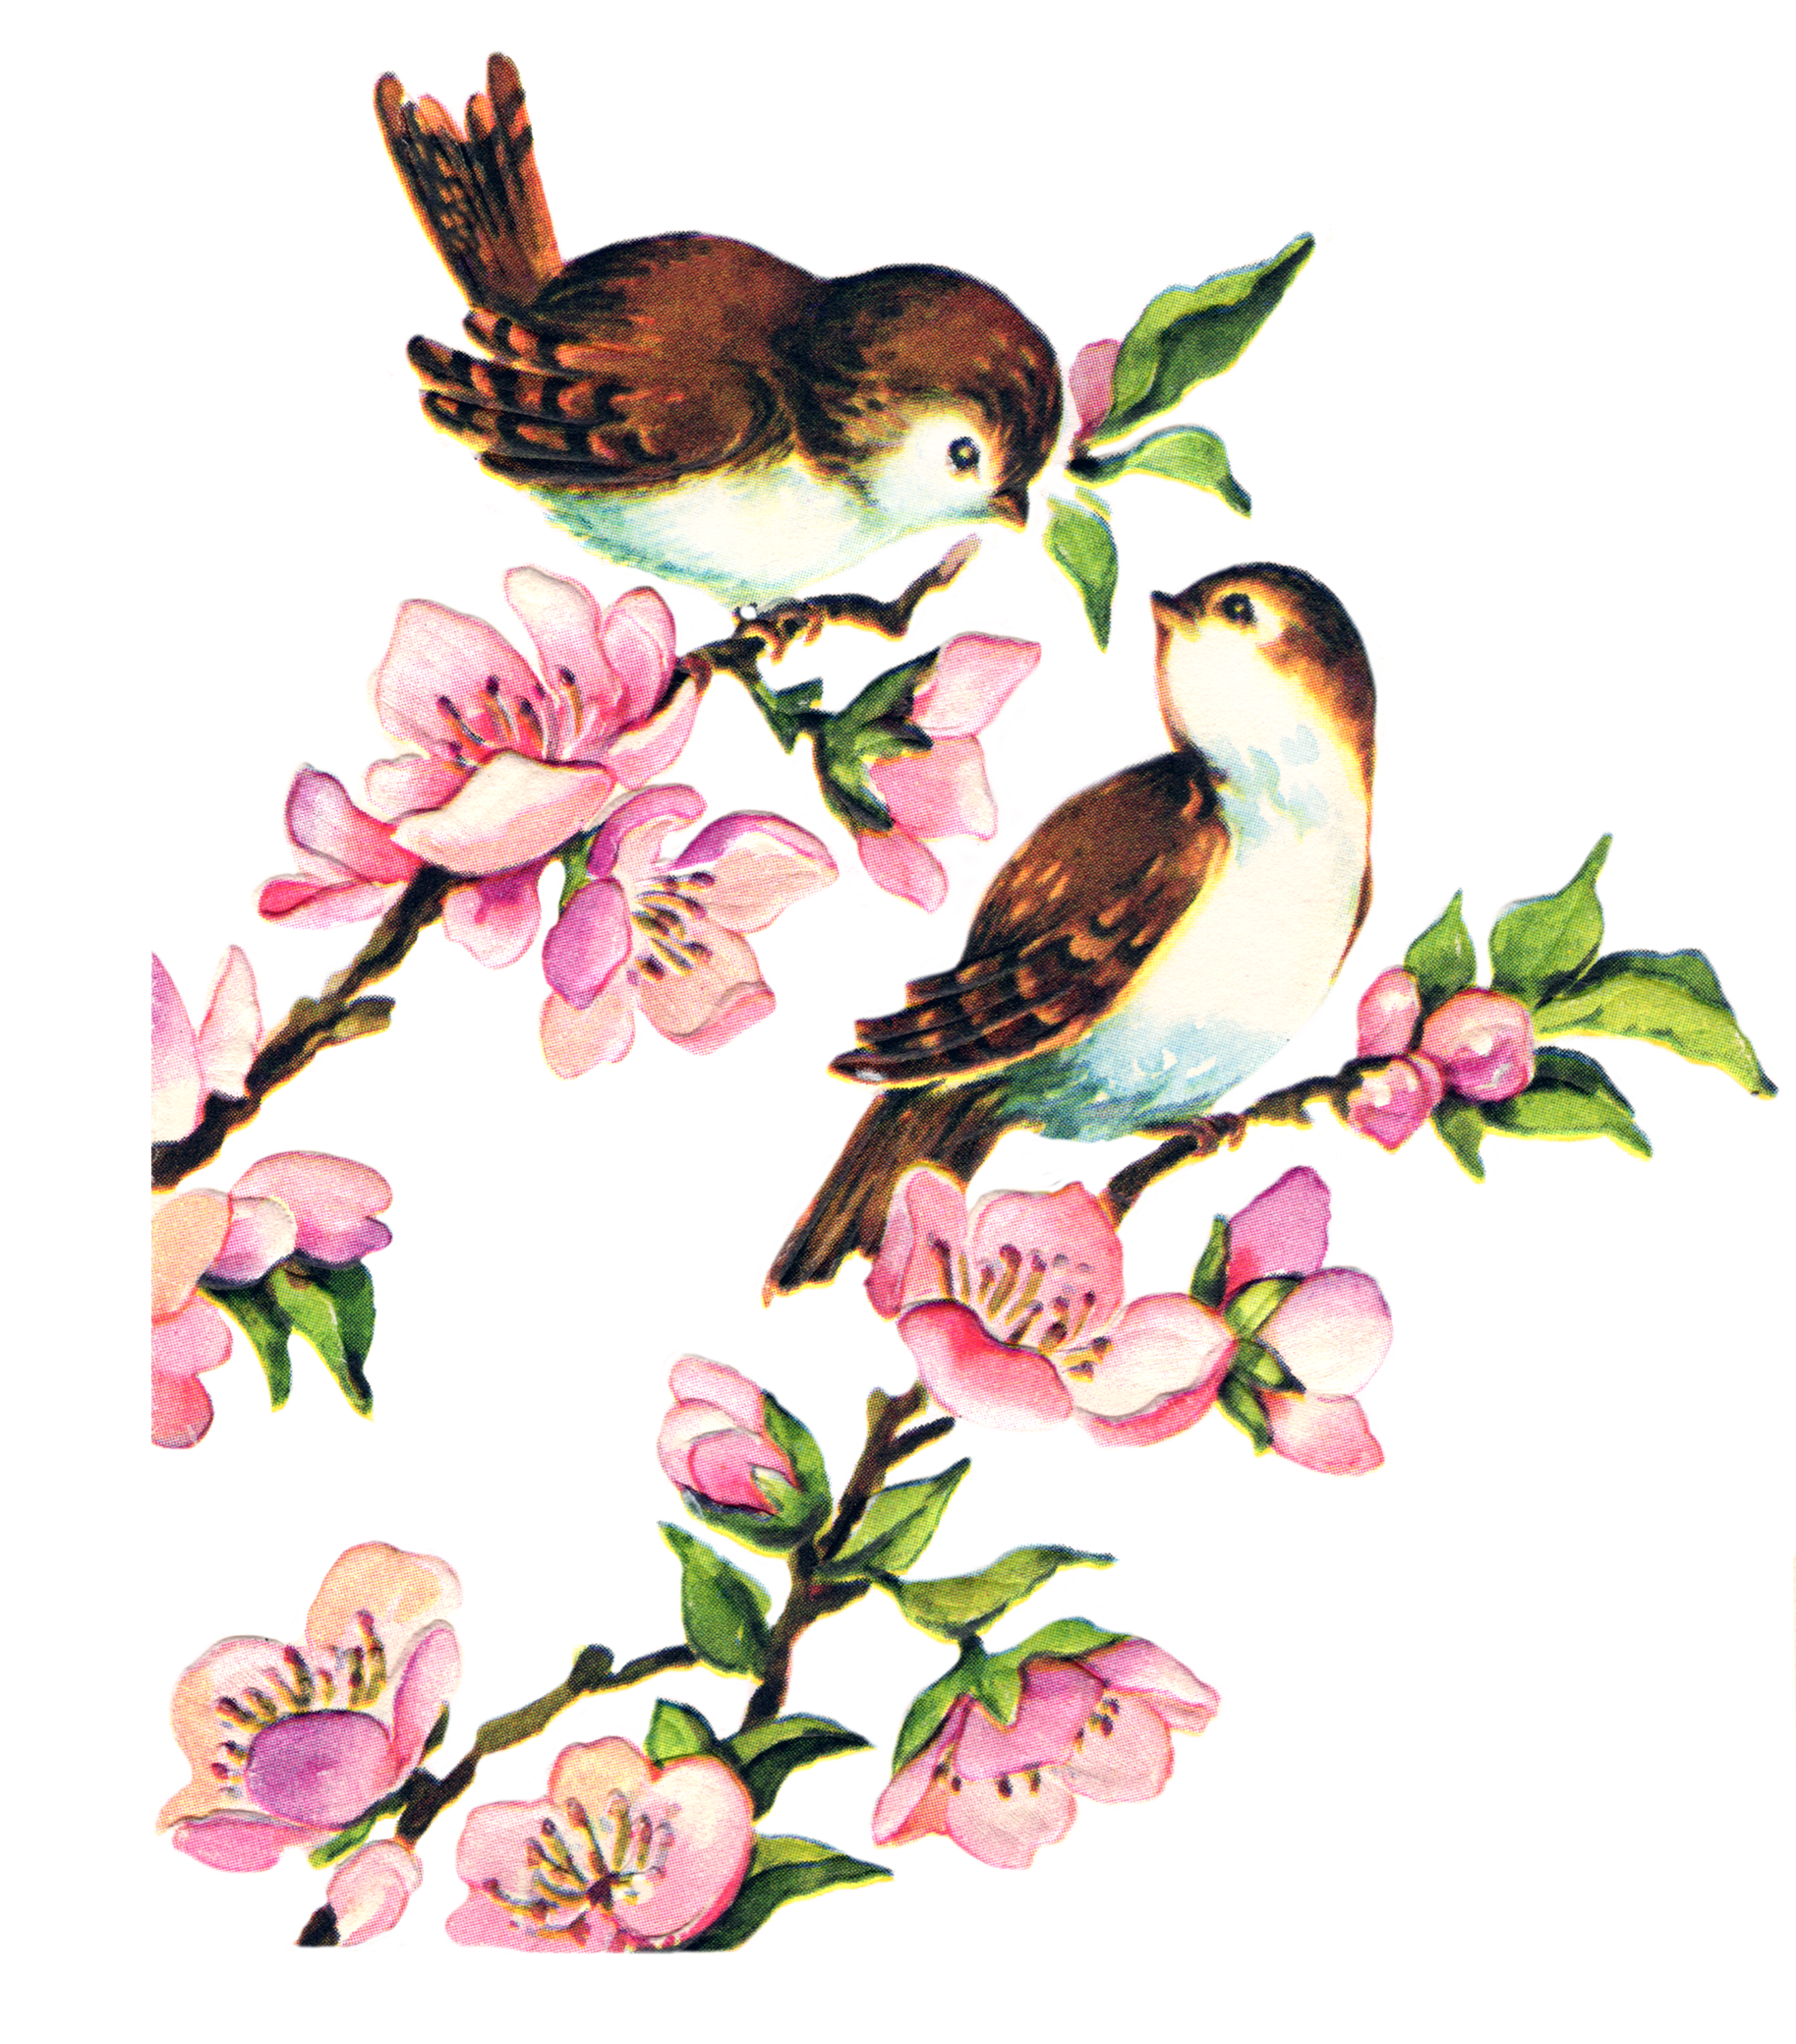 Hummingbird clipart vintage. Watercolour flower floral png